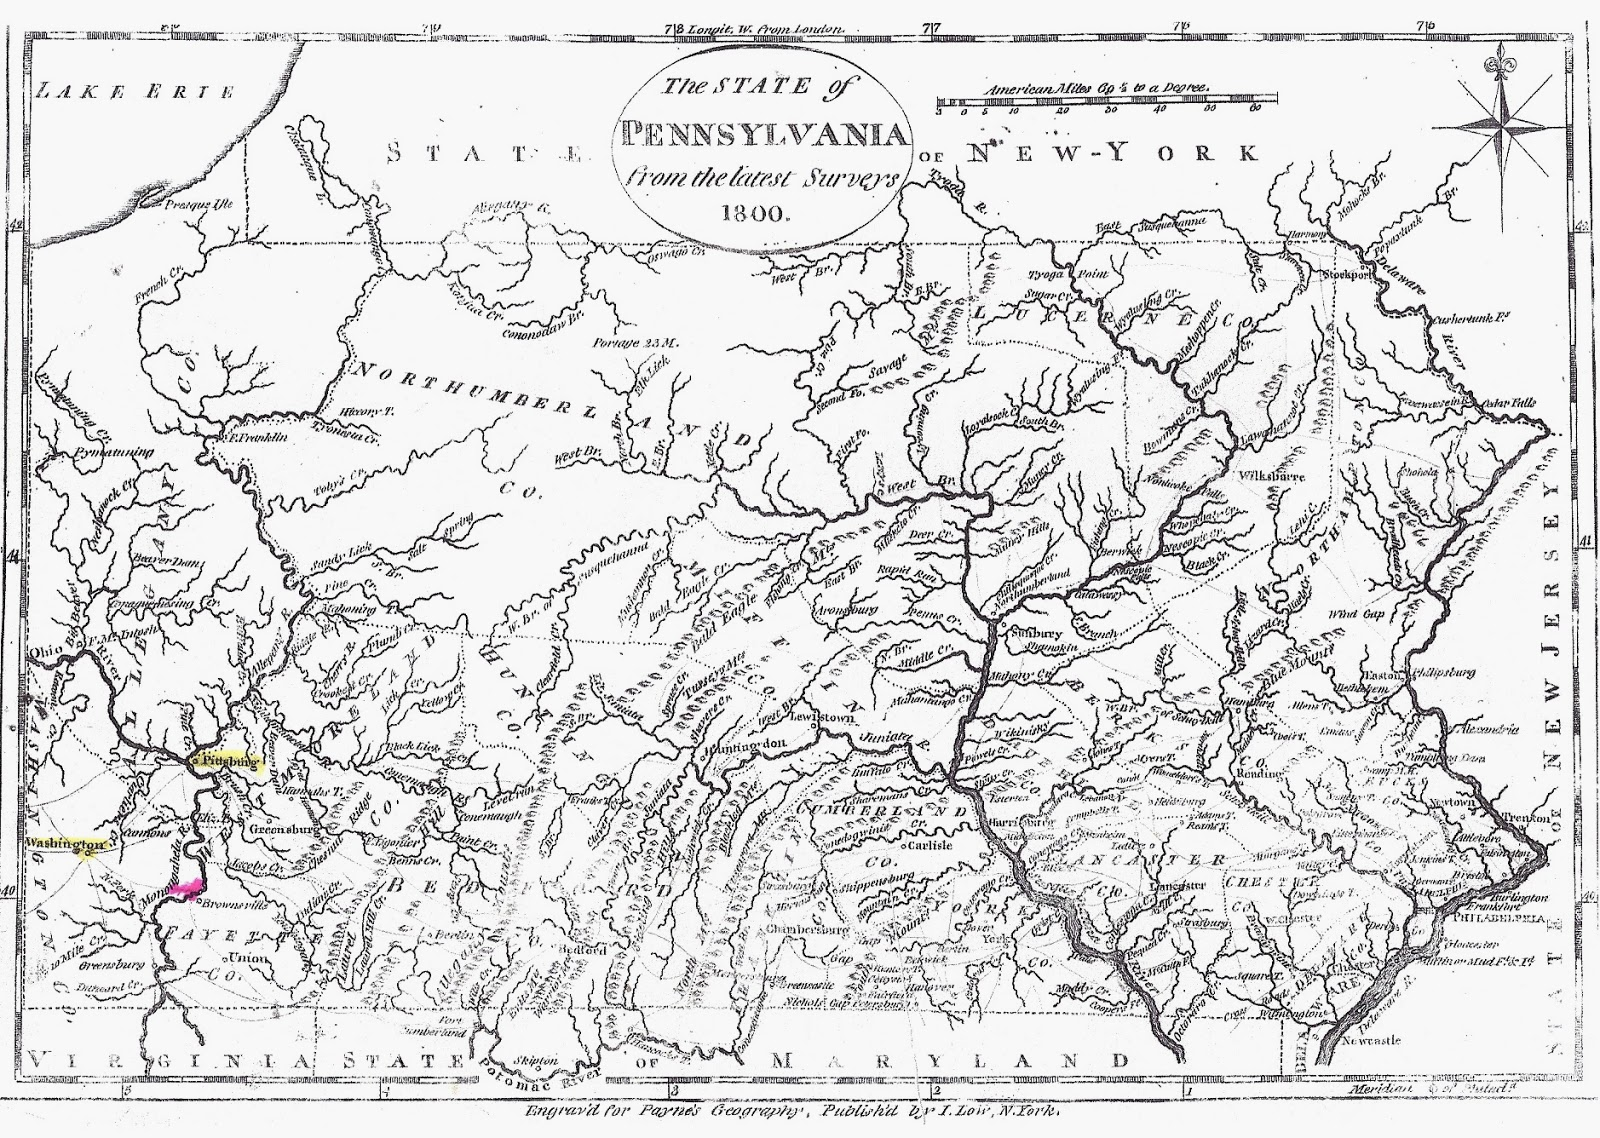 this map and many others can be found at historical maps of pennsylvania